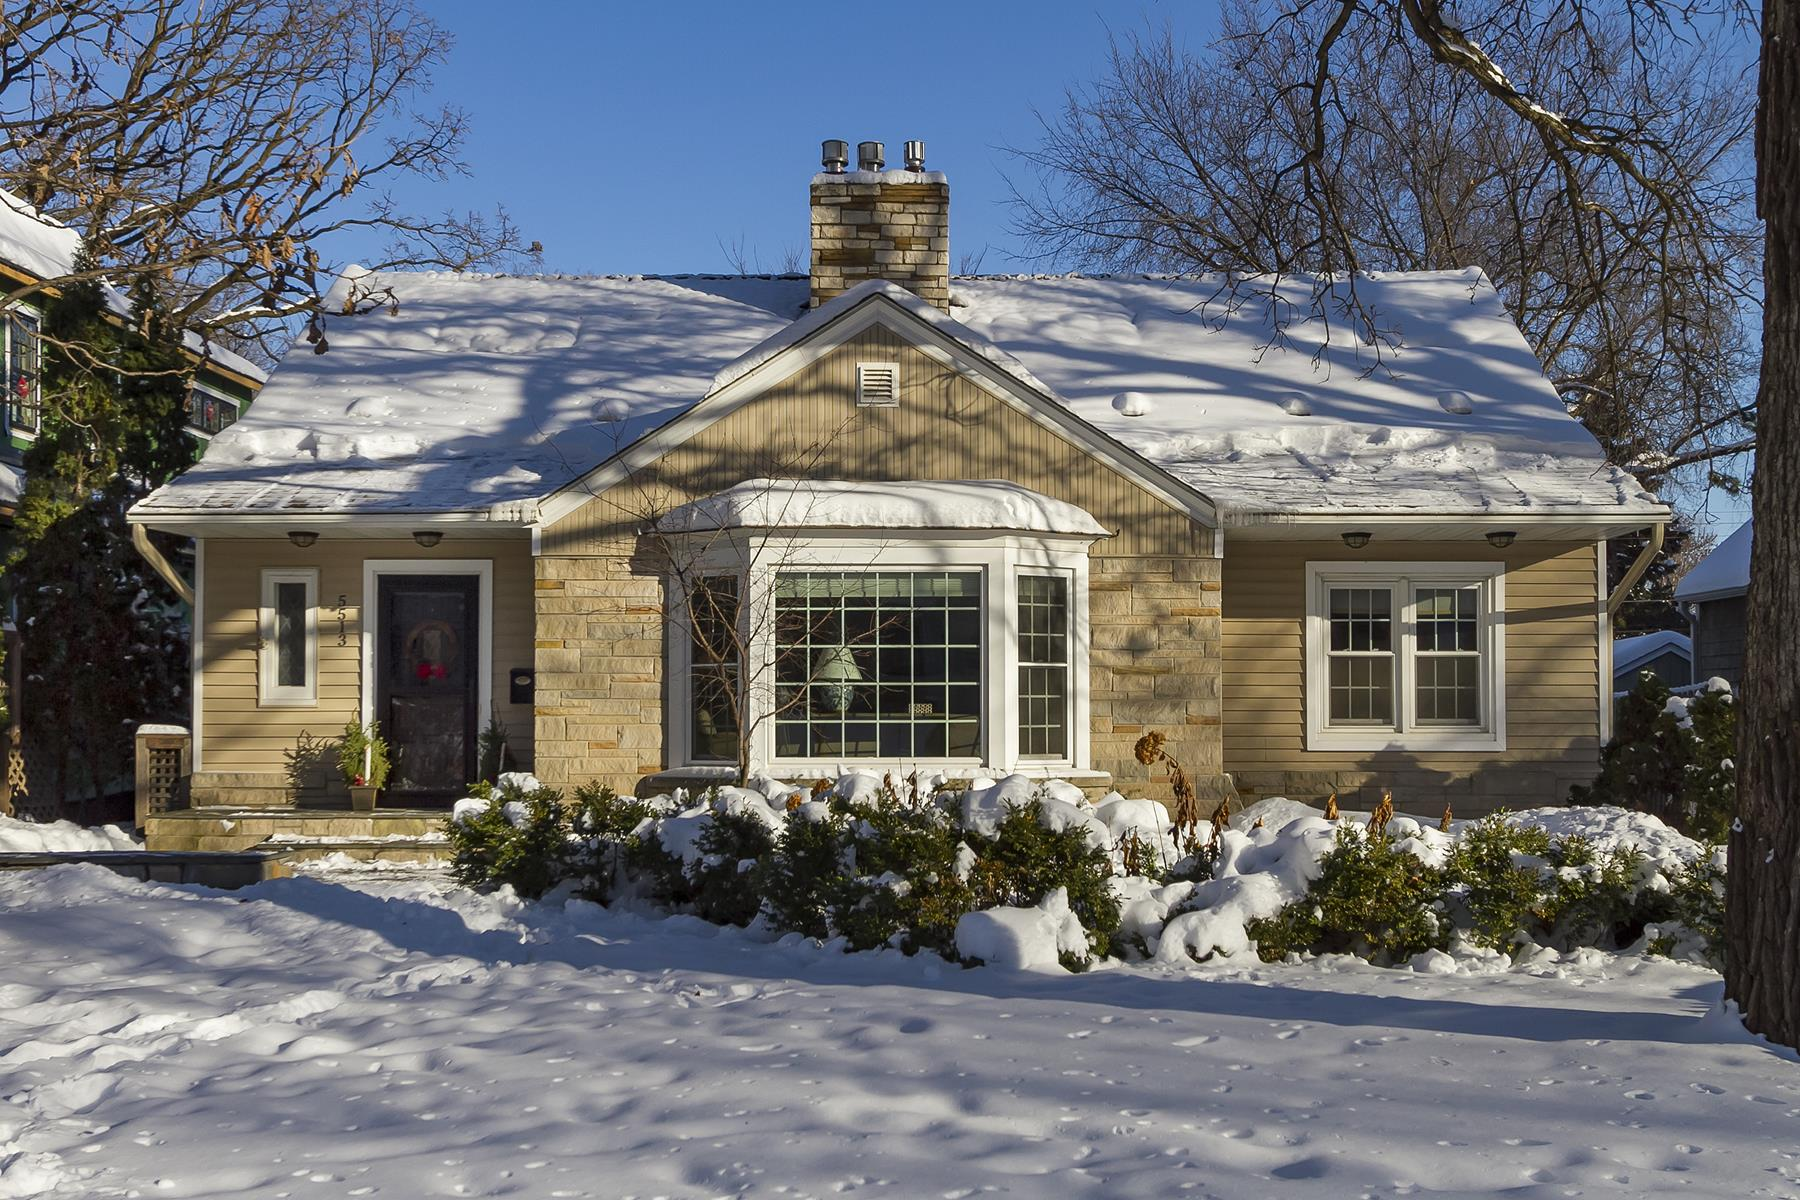 Single Family Home for Sale at 5513 Kellogg Avenue Edina, Minnesota, 55424 United States